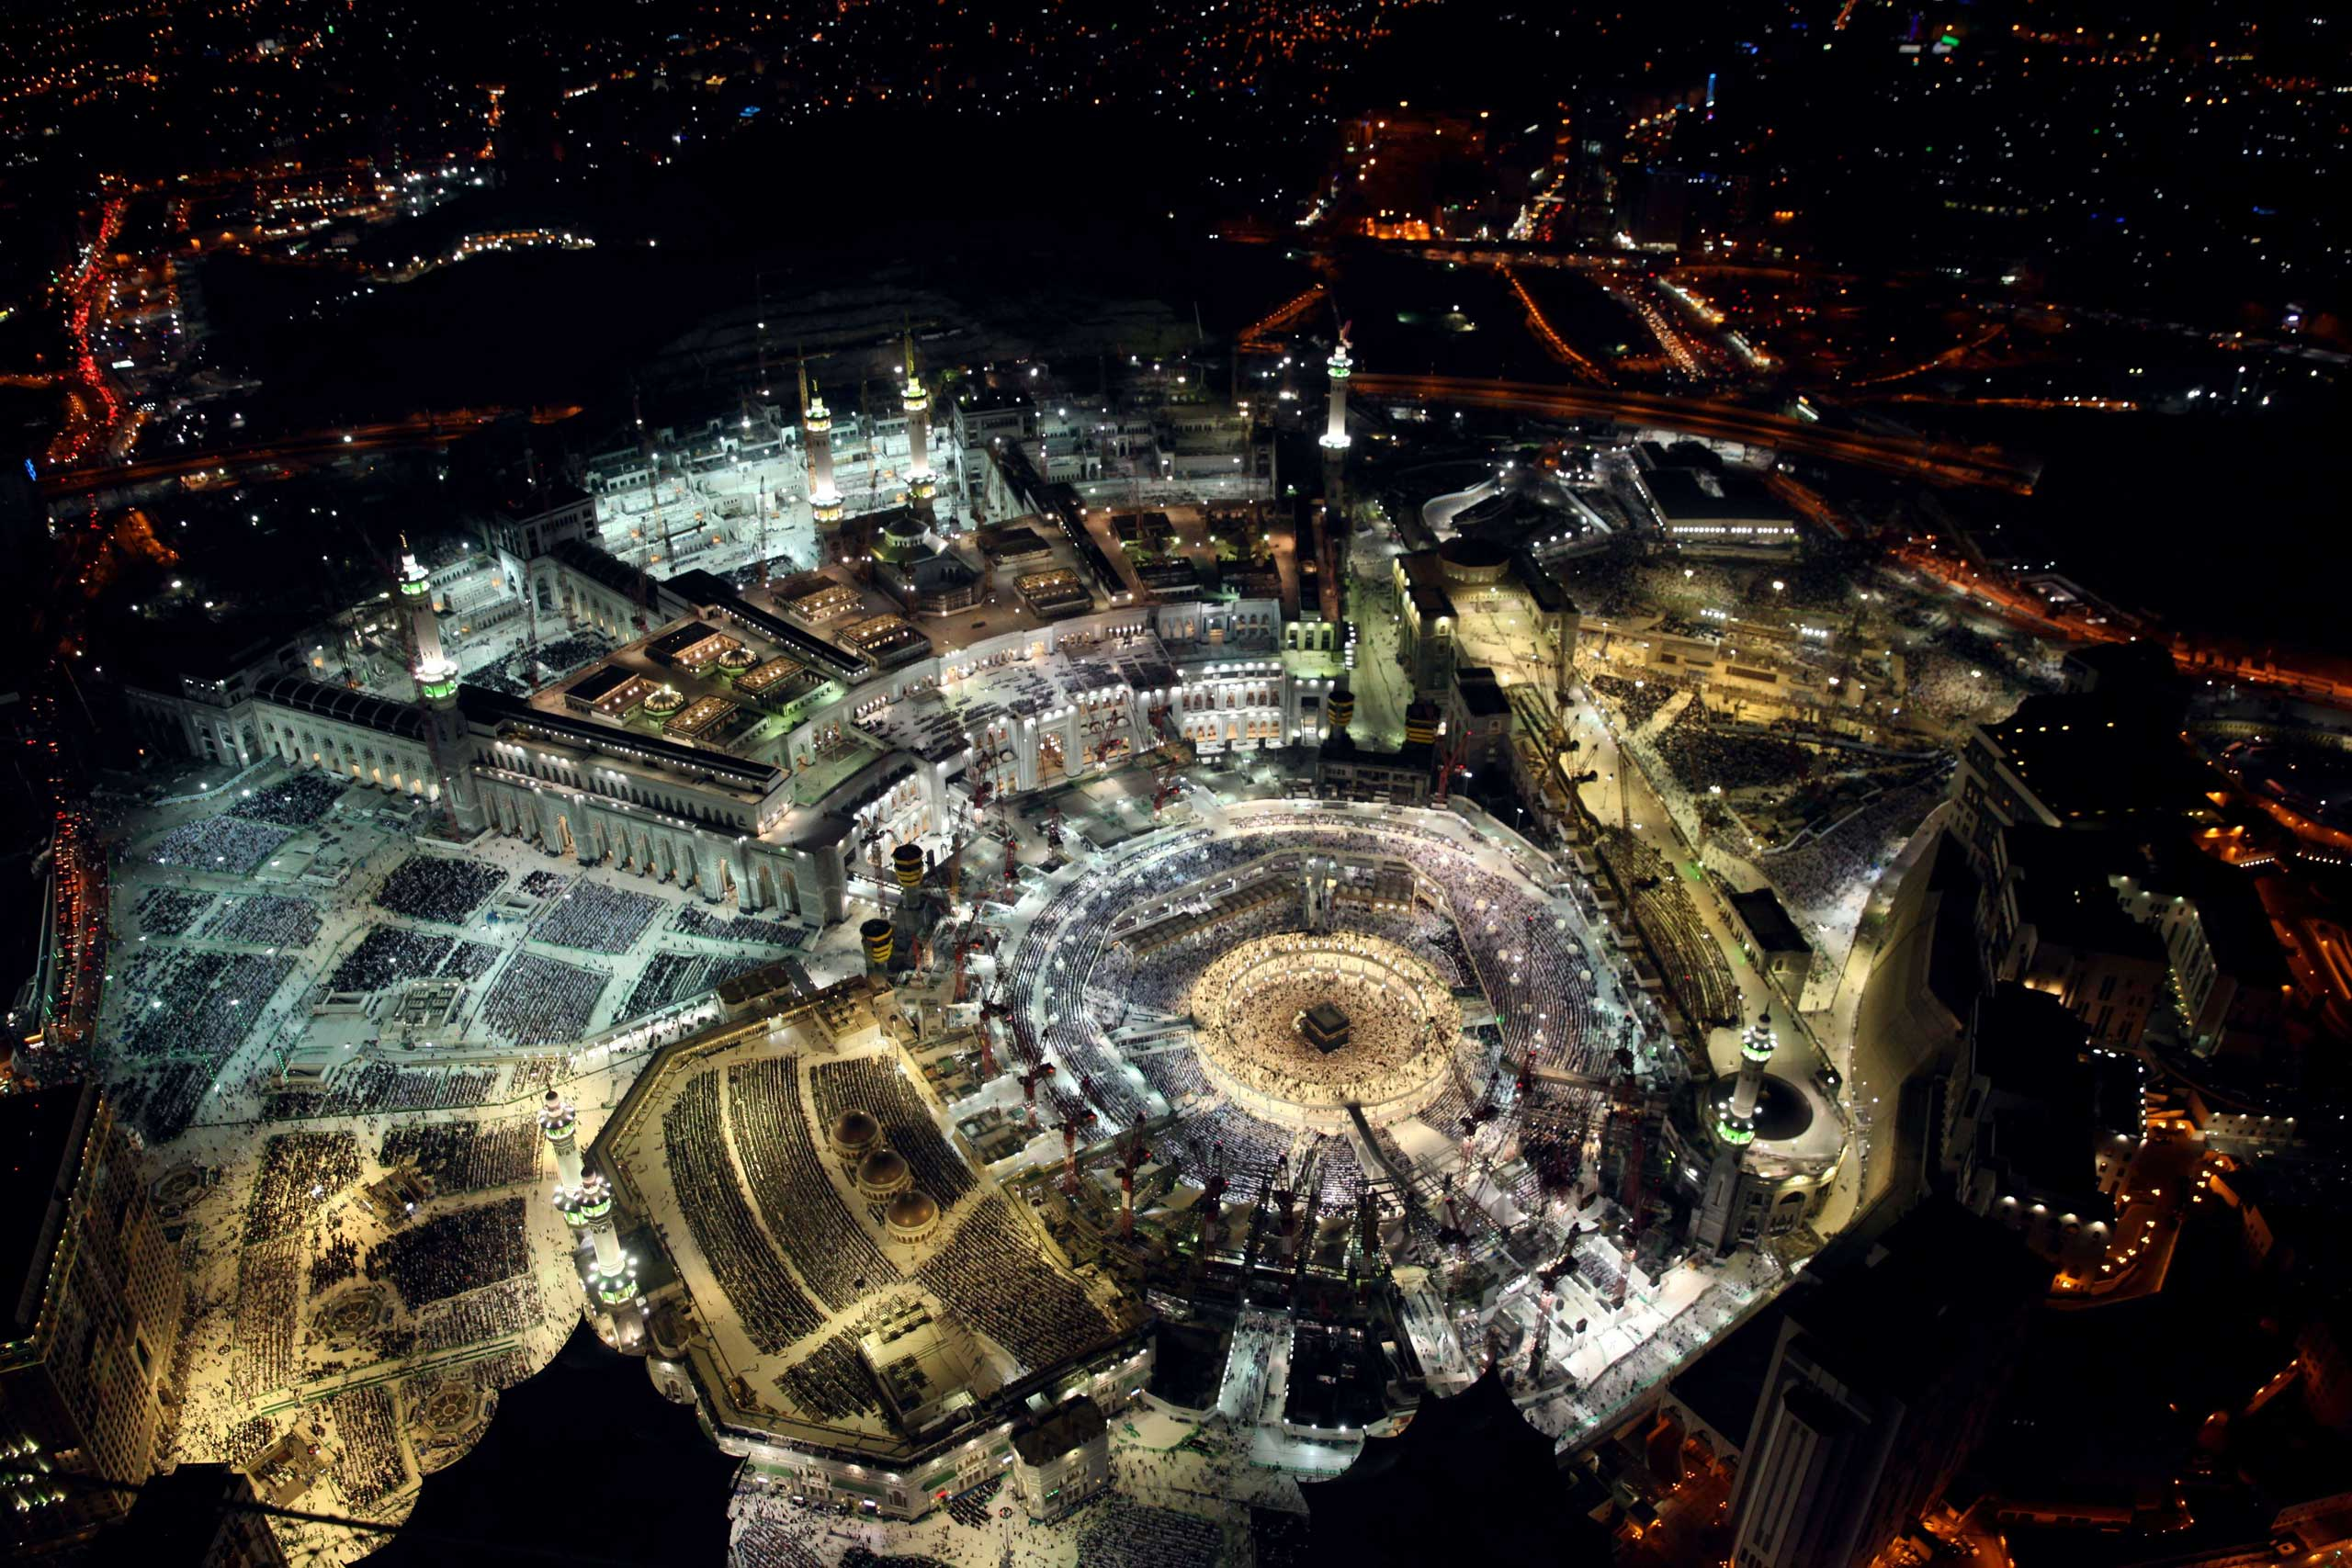 A picture taken from the Abraj al-Bait Towers, also known as the Mecca Royal Hotel Clock Tower, shows Muslim worshipers praying at the Grand Mosque in the Muslim holy city of Mecca, a day before the end of the fasting month of Ramadan, on July 16, 2015.